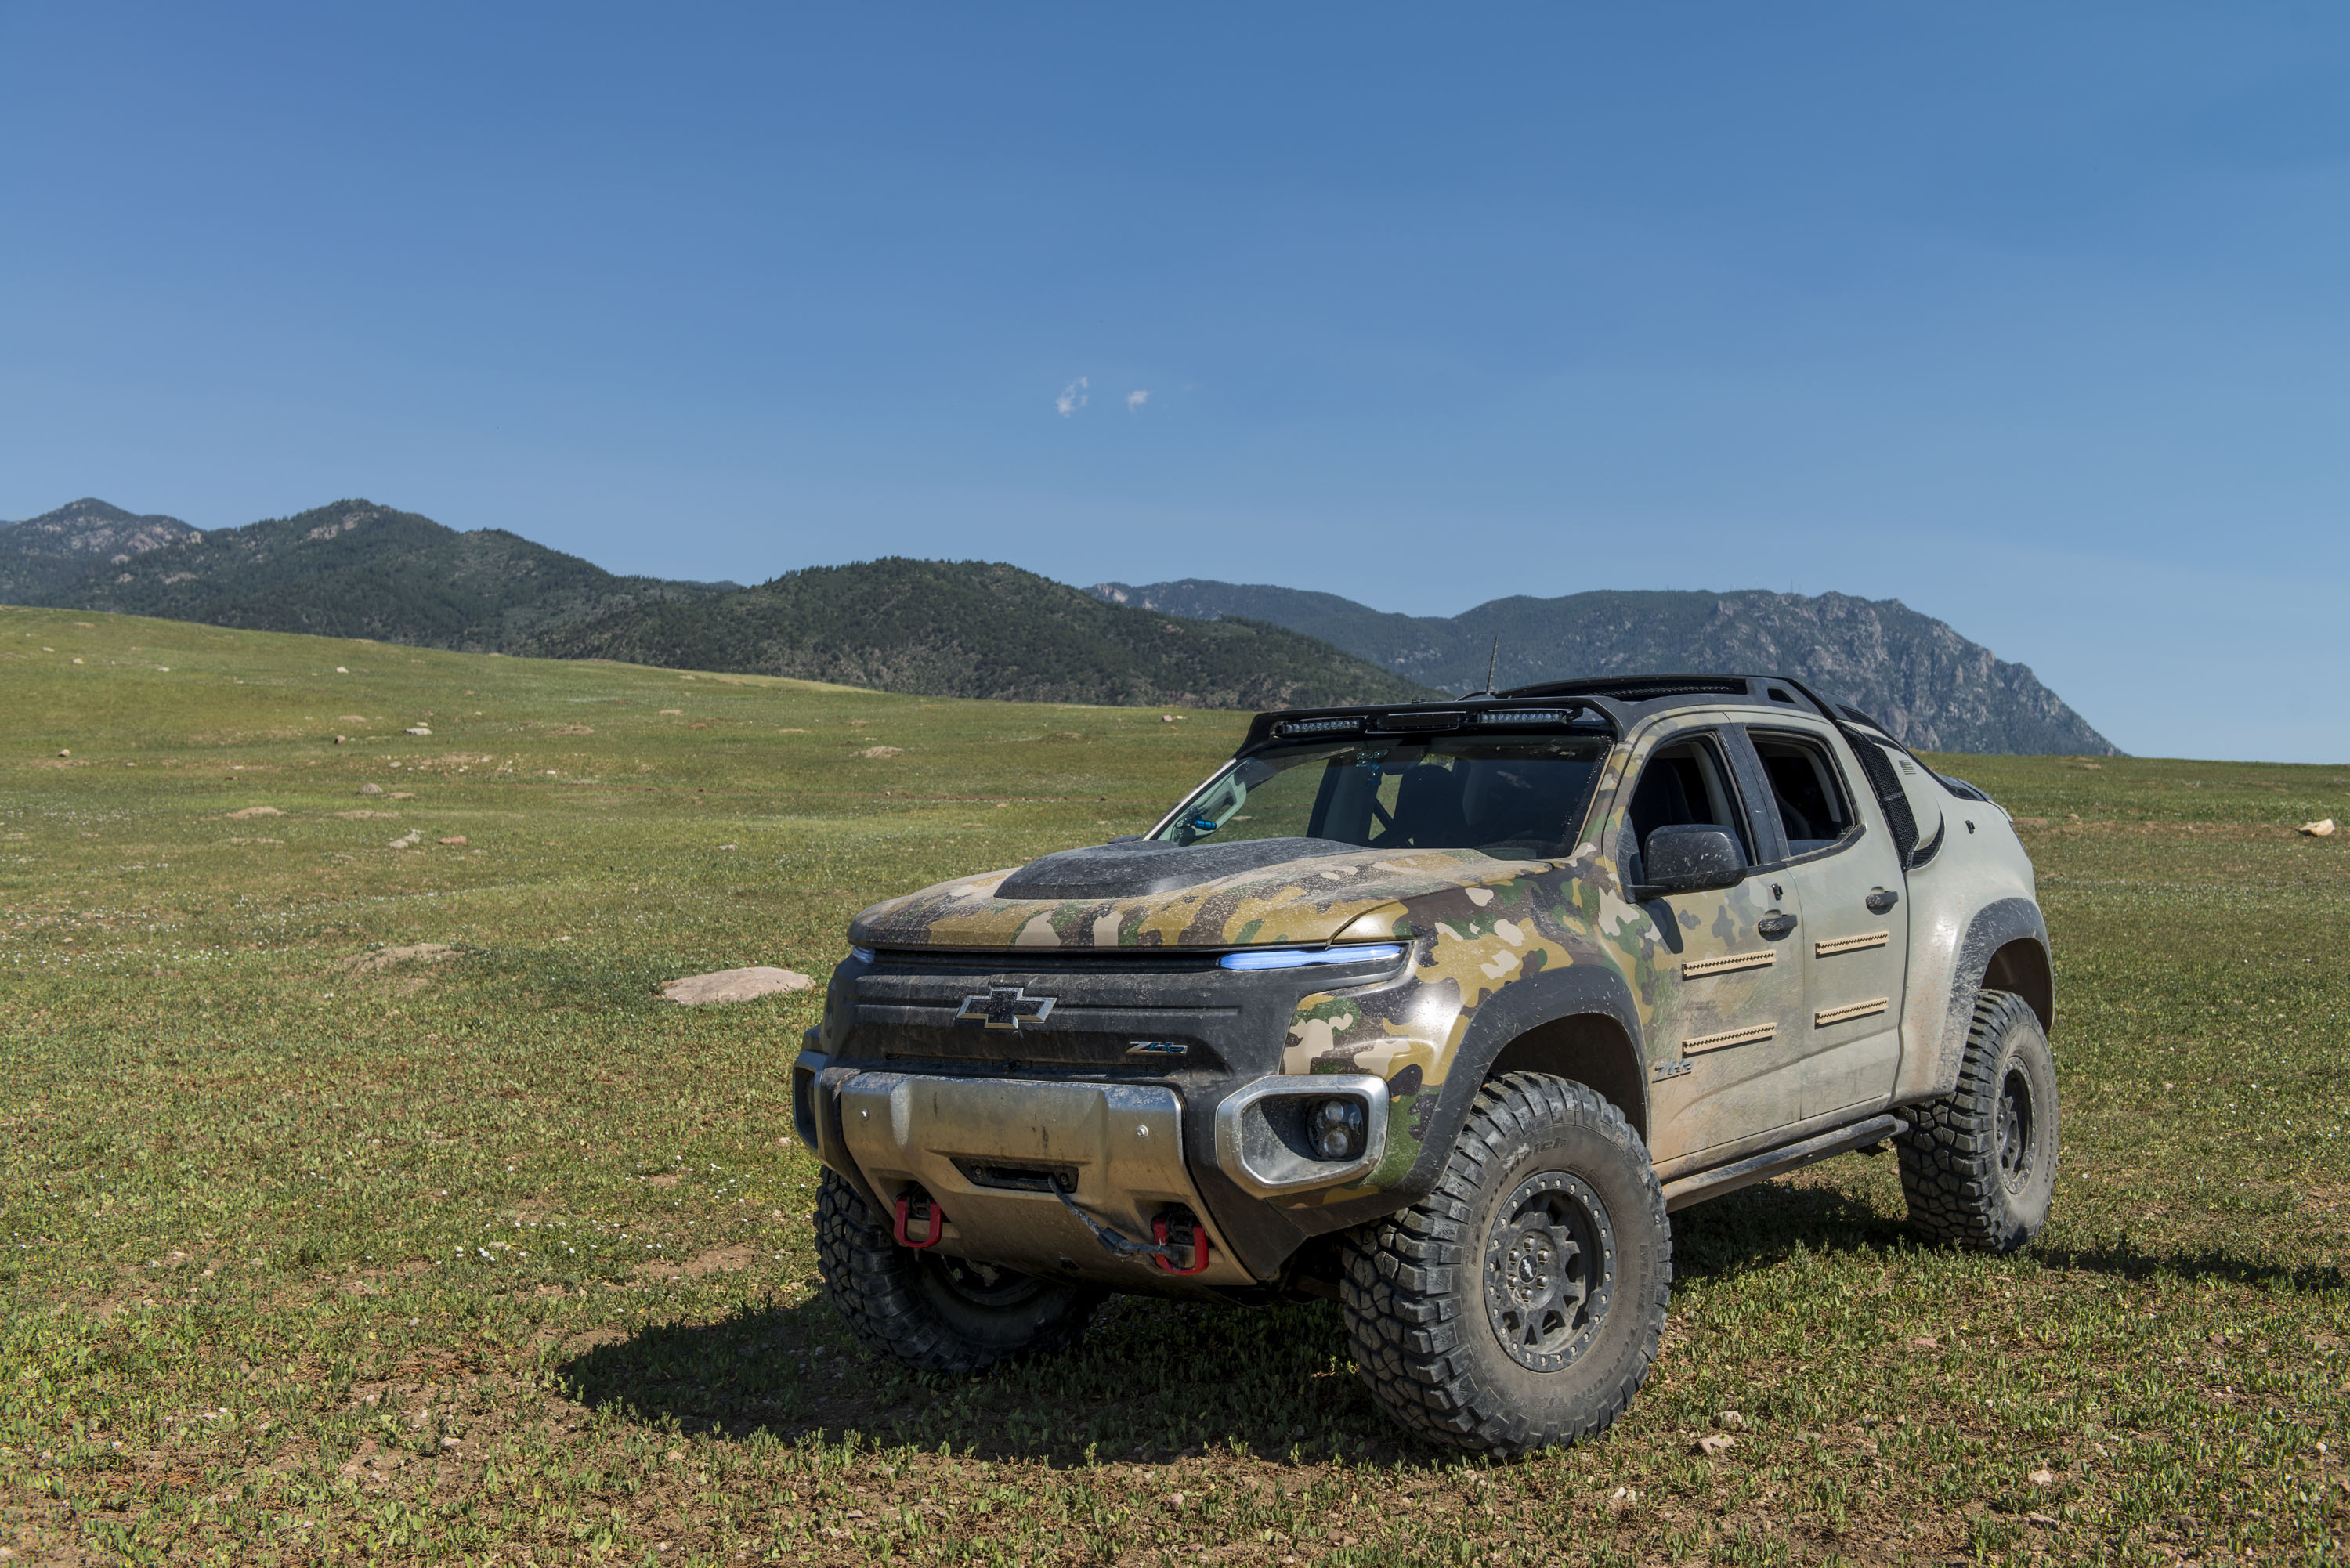 Chevrolet Colorado Zh2 First Ride In Hydrogen Fuel Cell